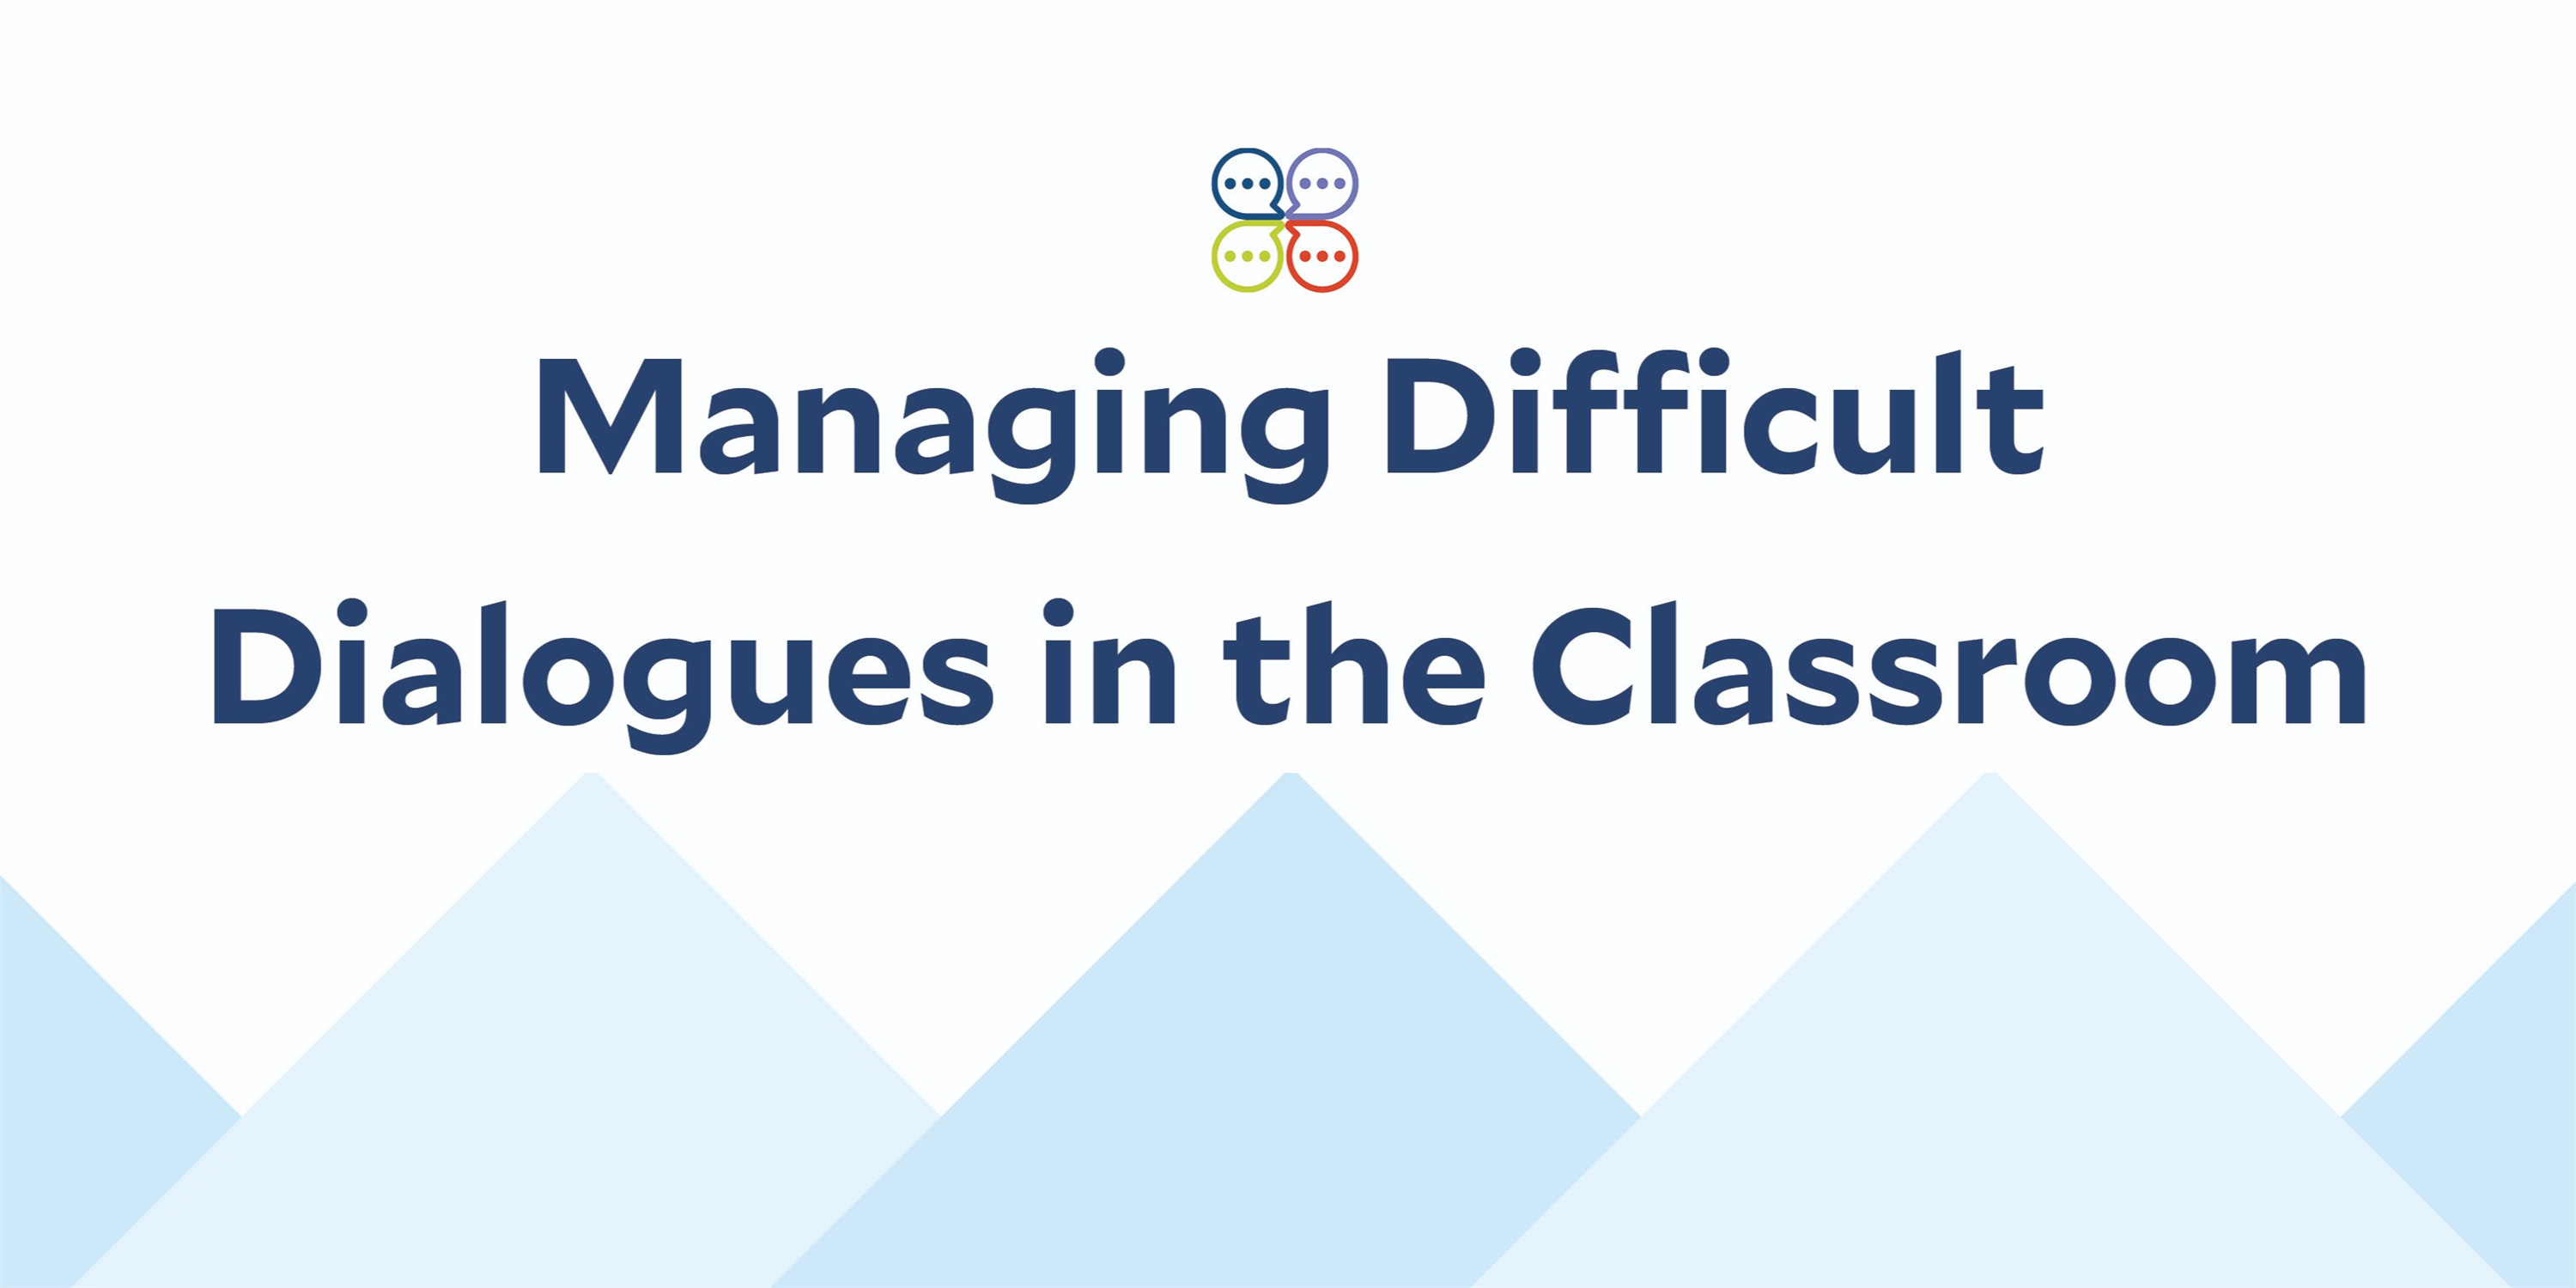 Managing Difficult Dialogues in the Classroom